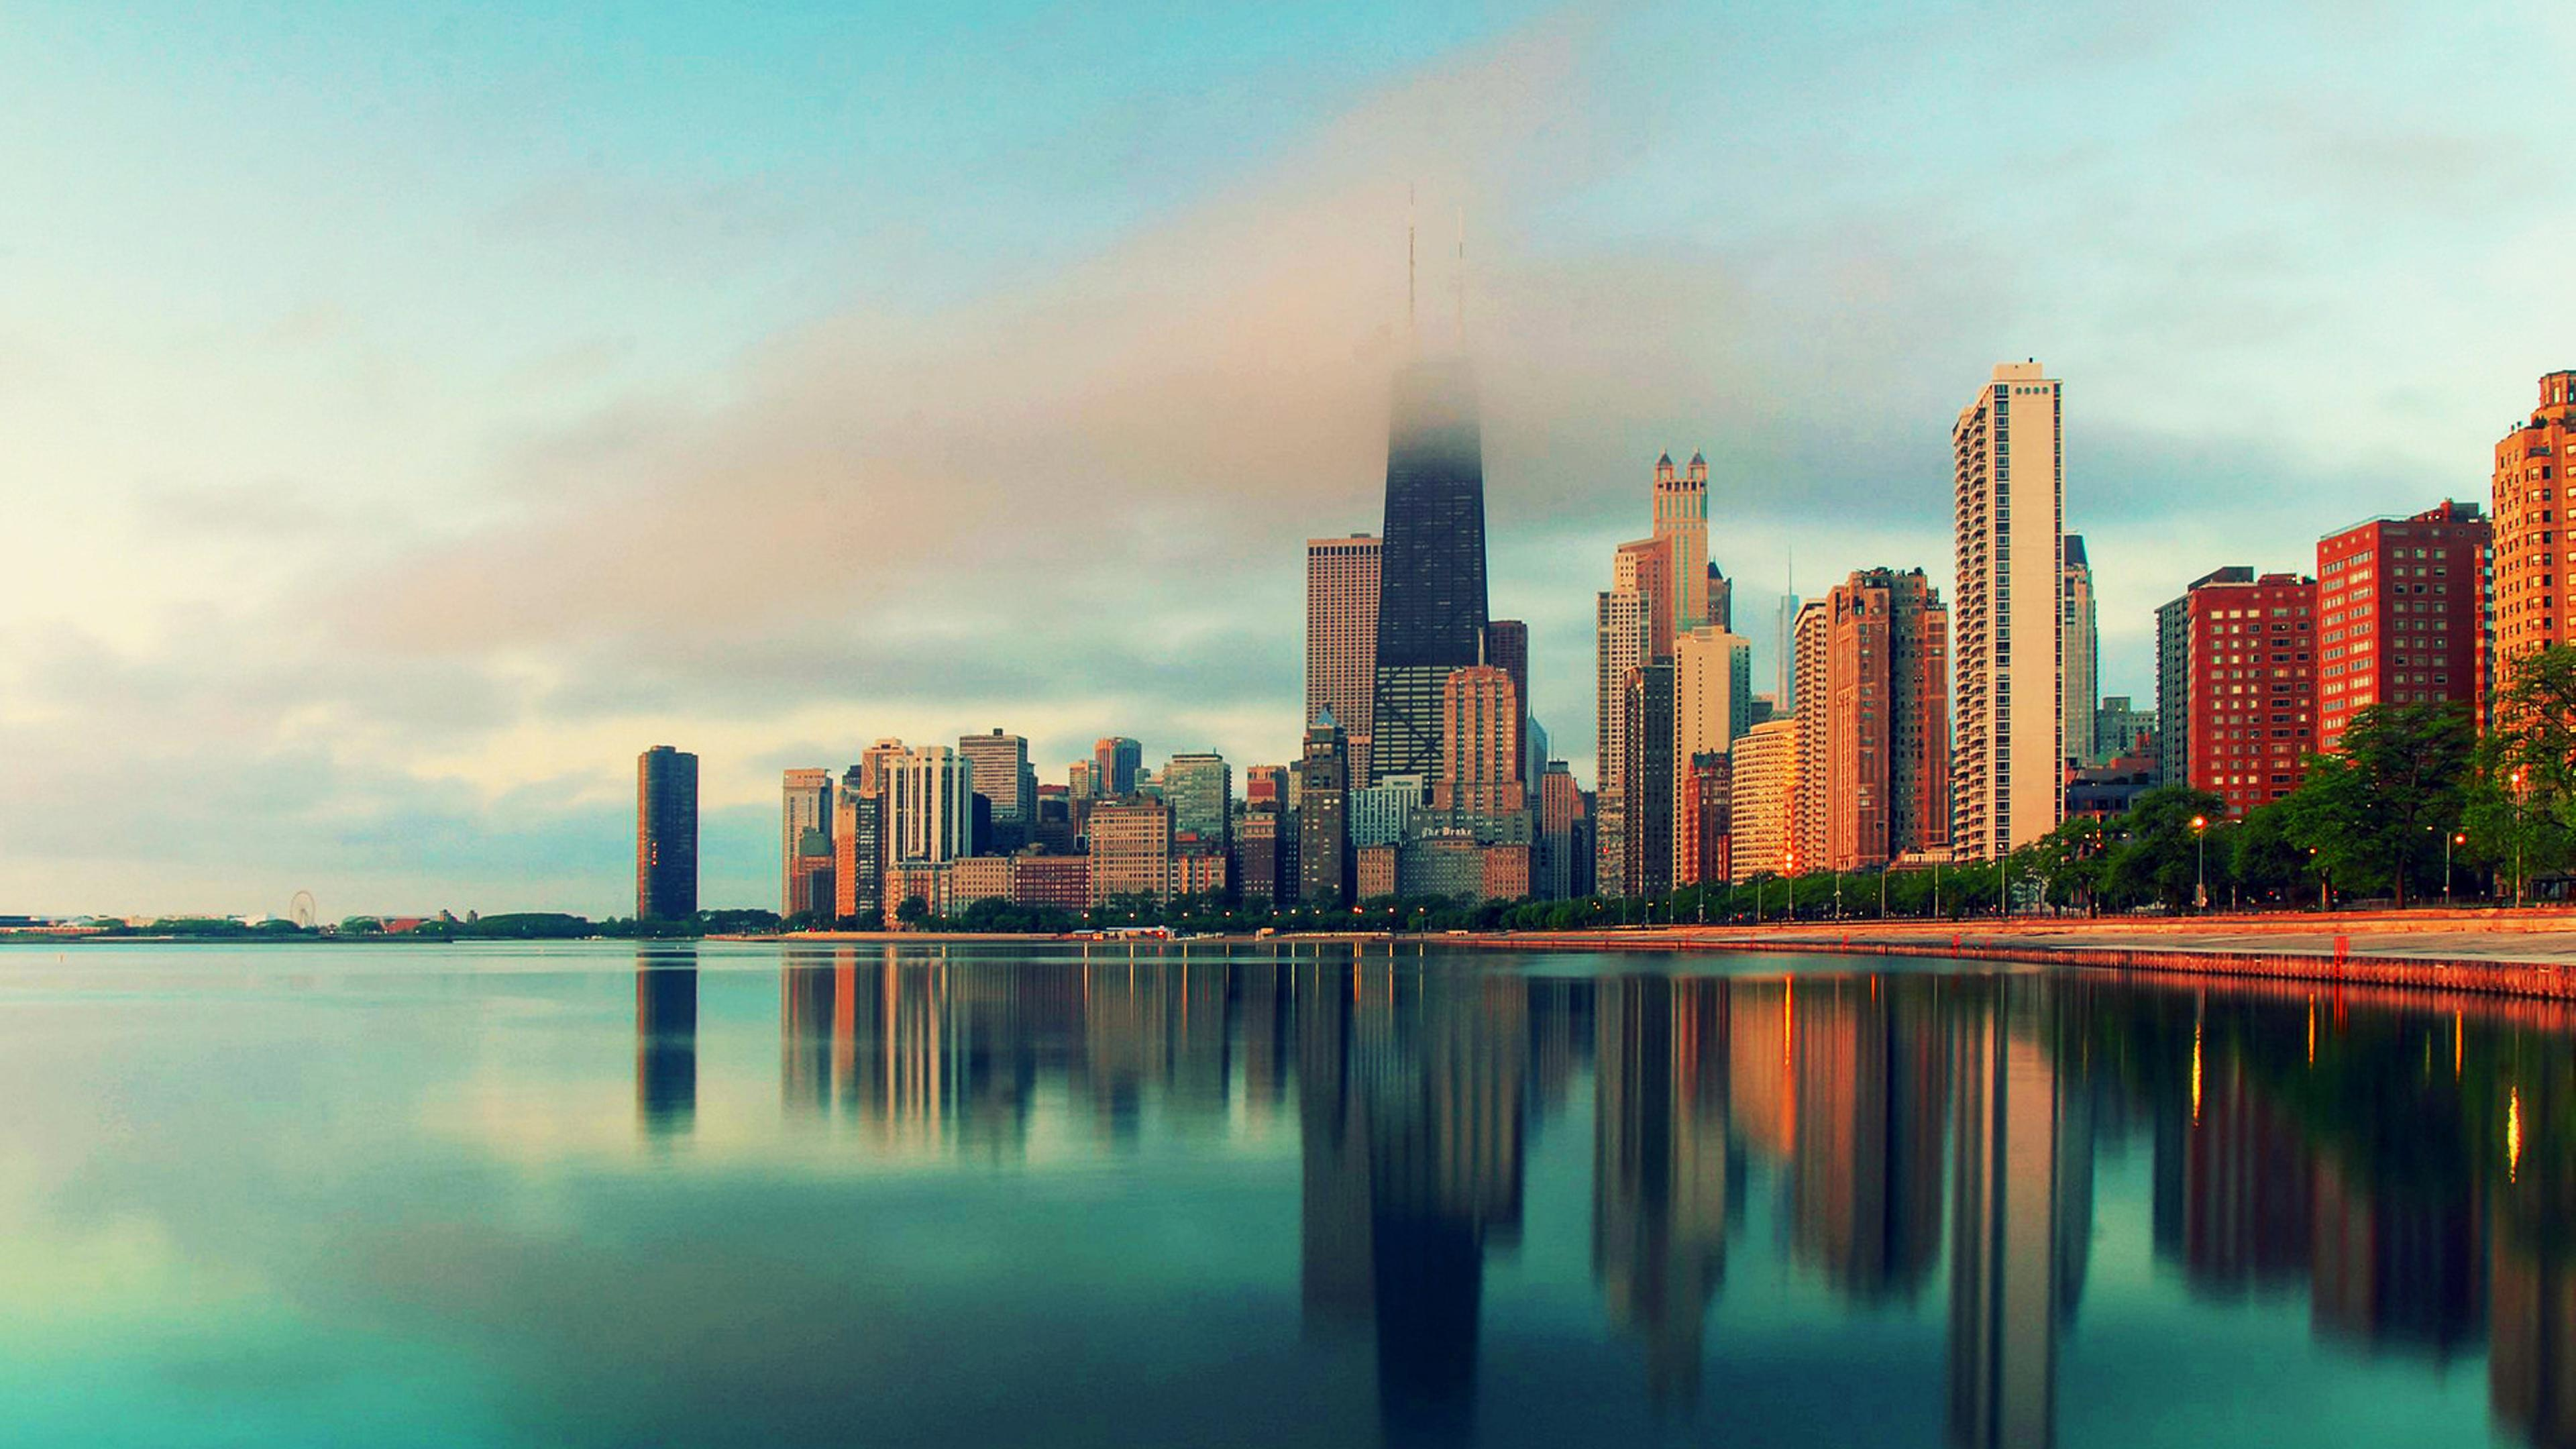 City Of Chicago Hd Wallpaper Download 3840x2160